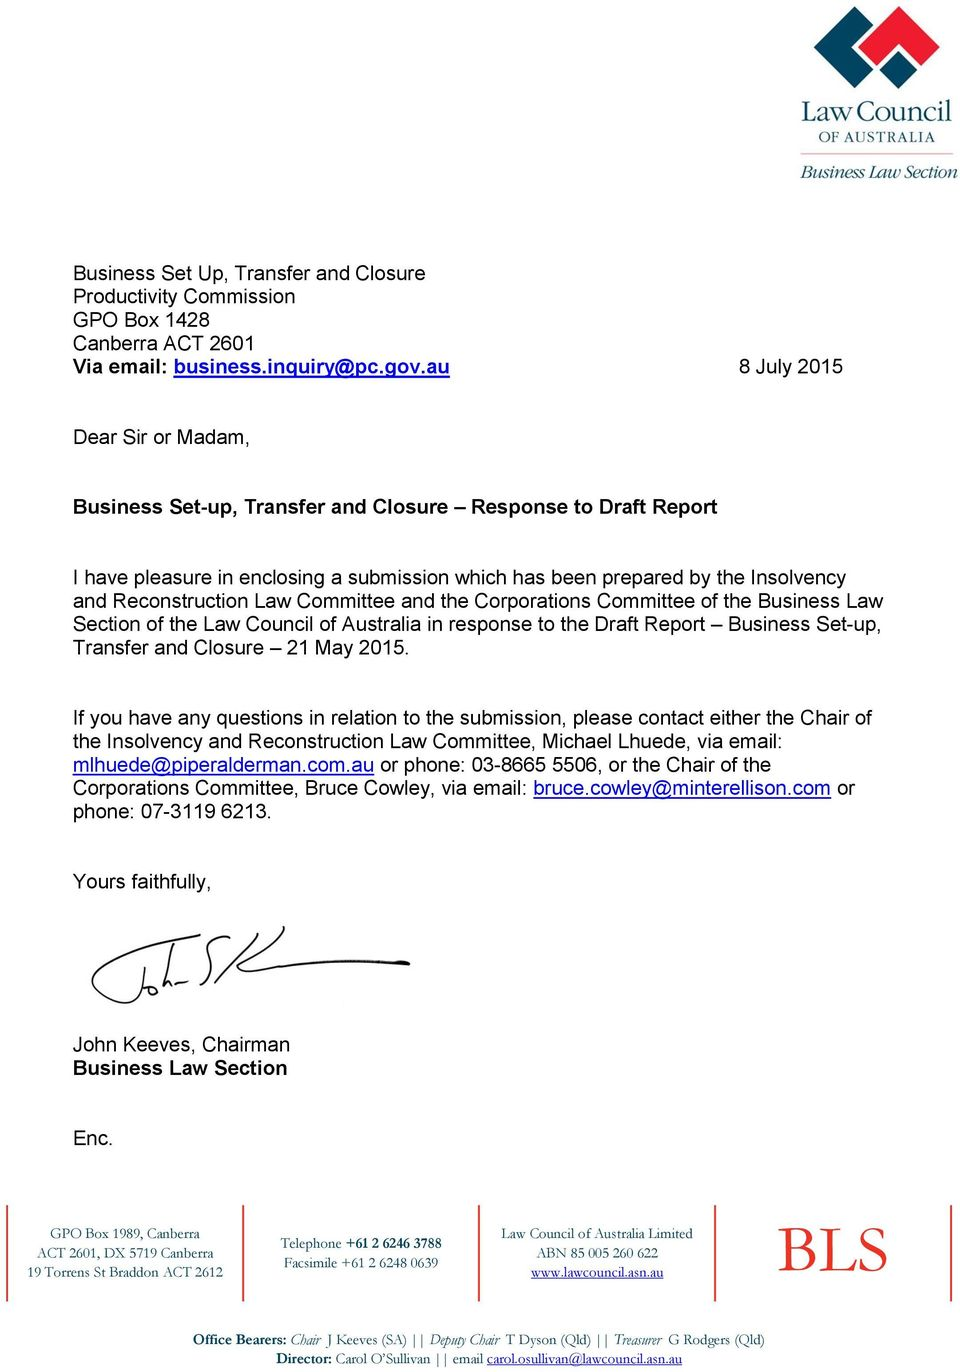 Law Committee and the Corporations Committee of the Business Law Section of the Law Council of Australia in response to the Draft Report Business Set-up, Transfer and Closure 21 May 2015.